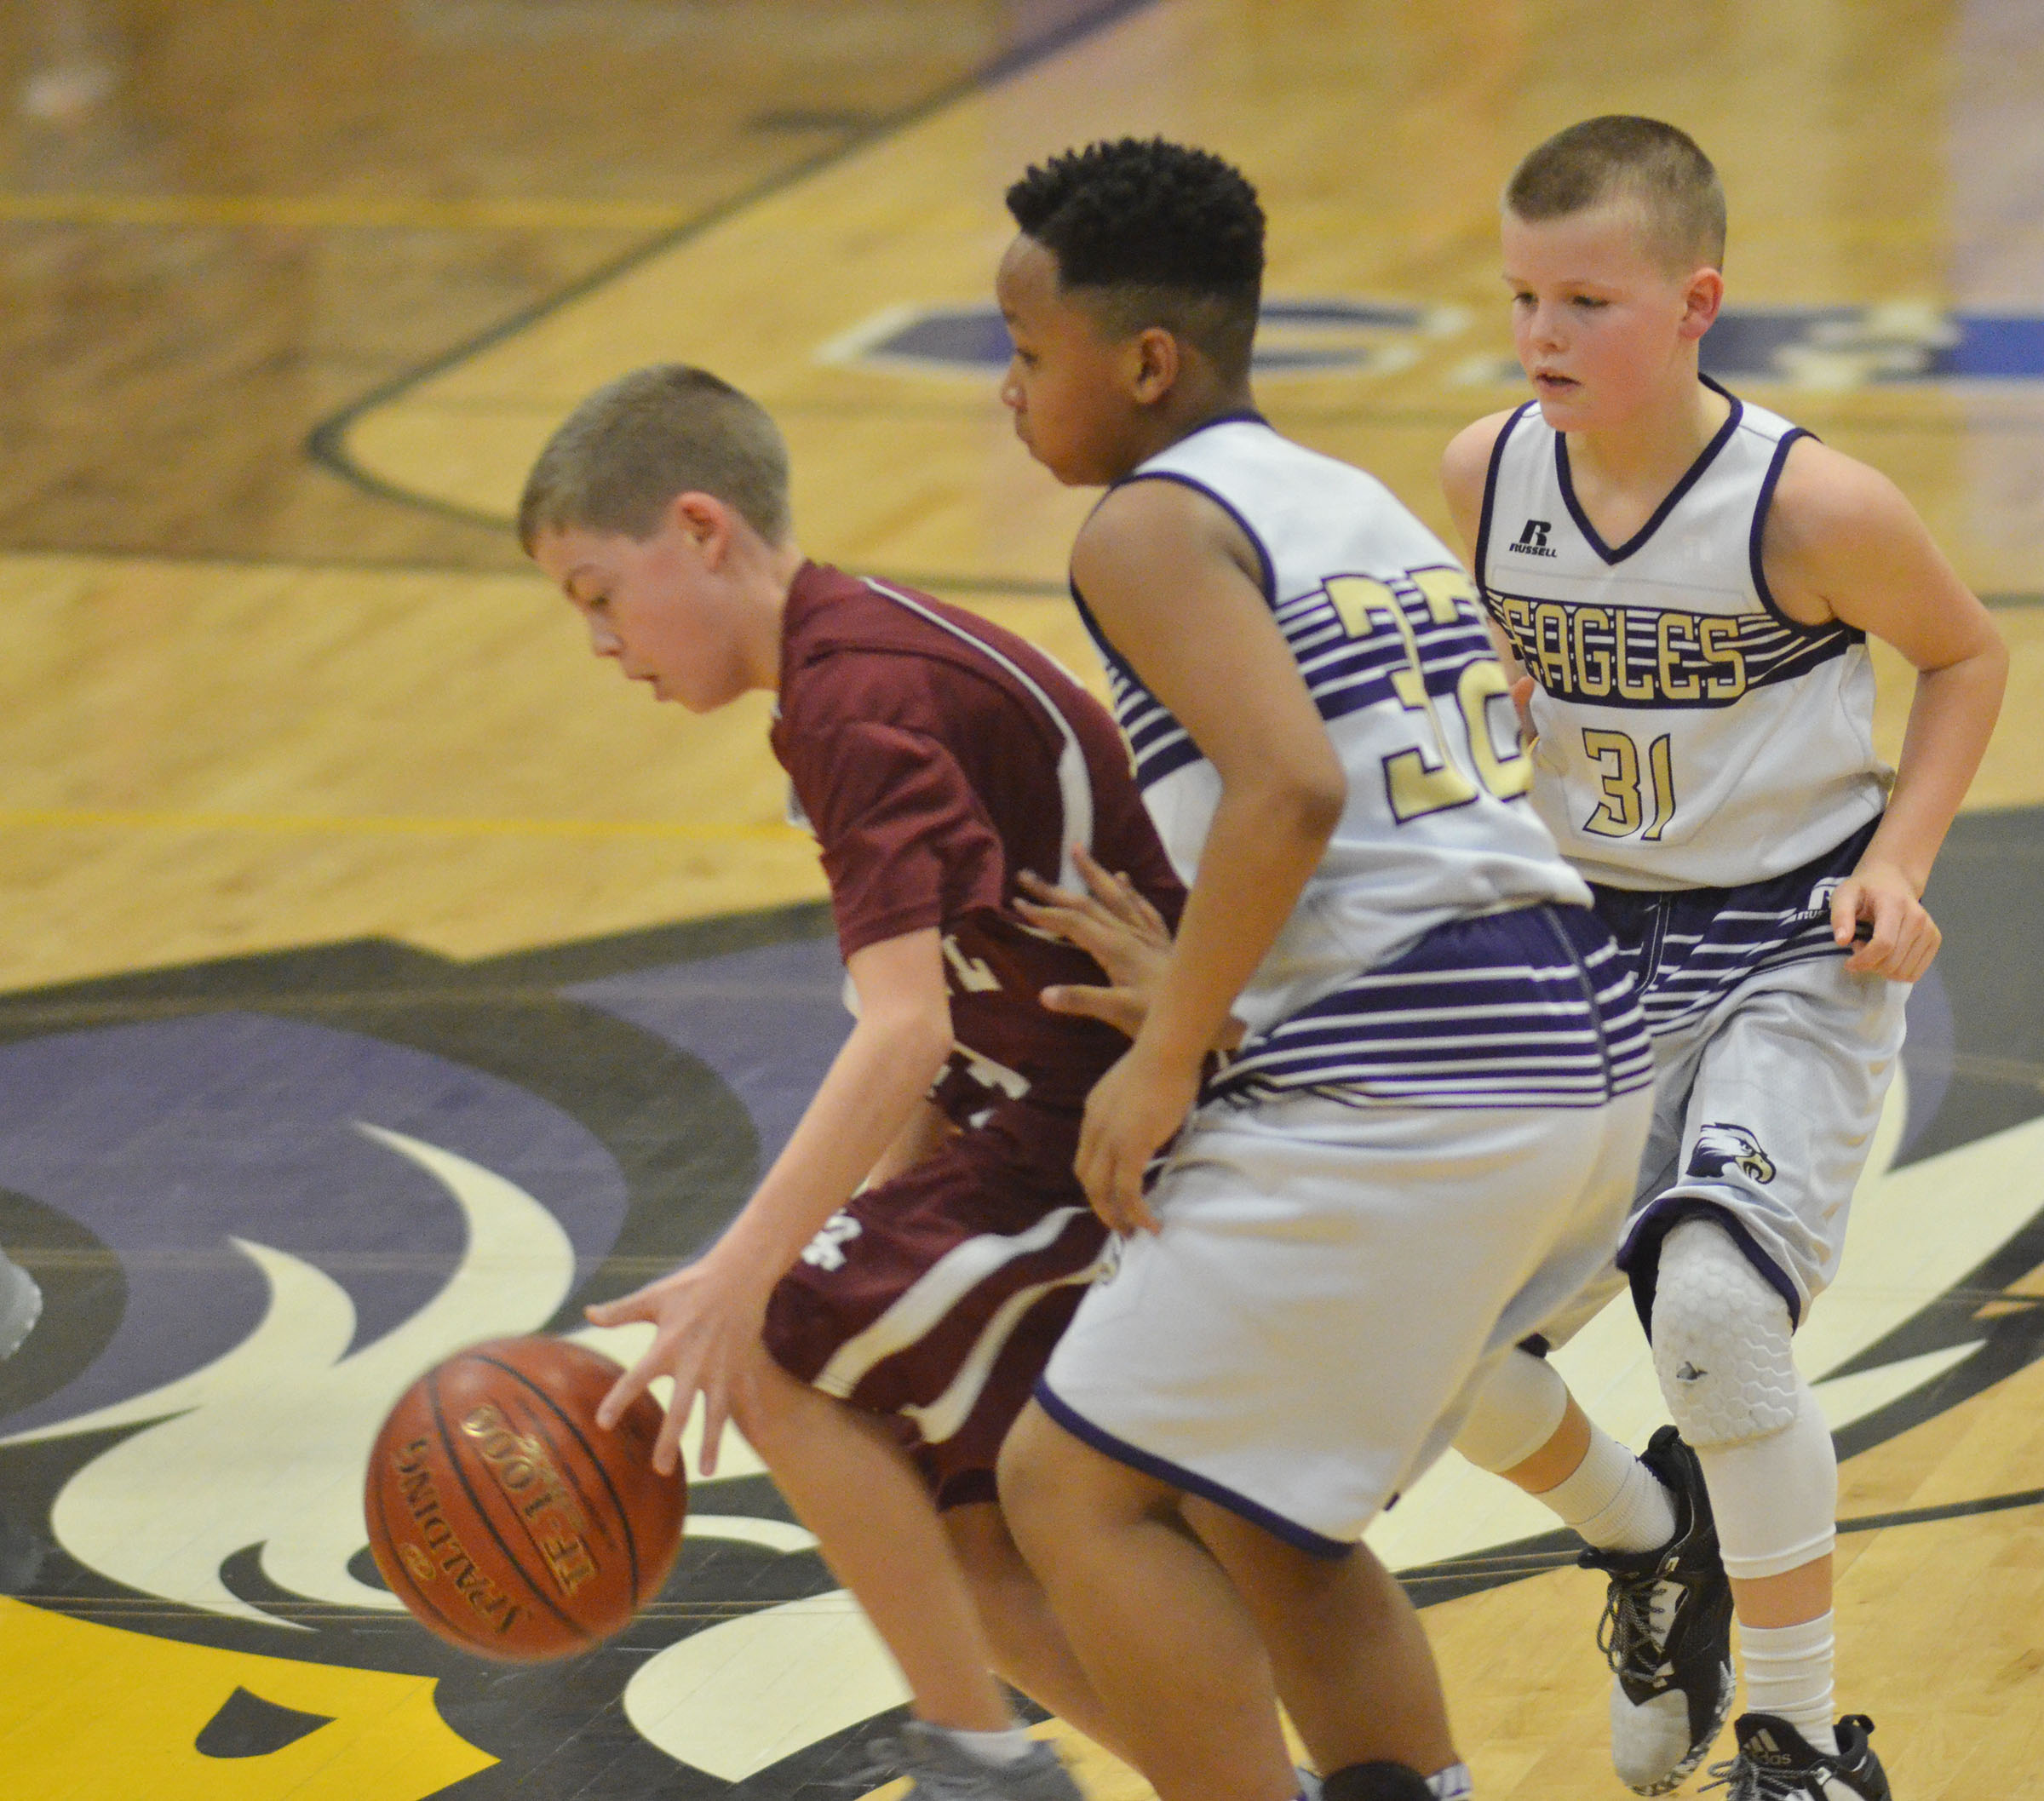 CMS sixth-graders Deondre Weathers, center, and Konner Forbis play defense.